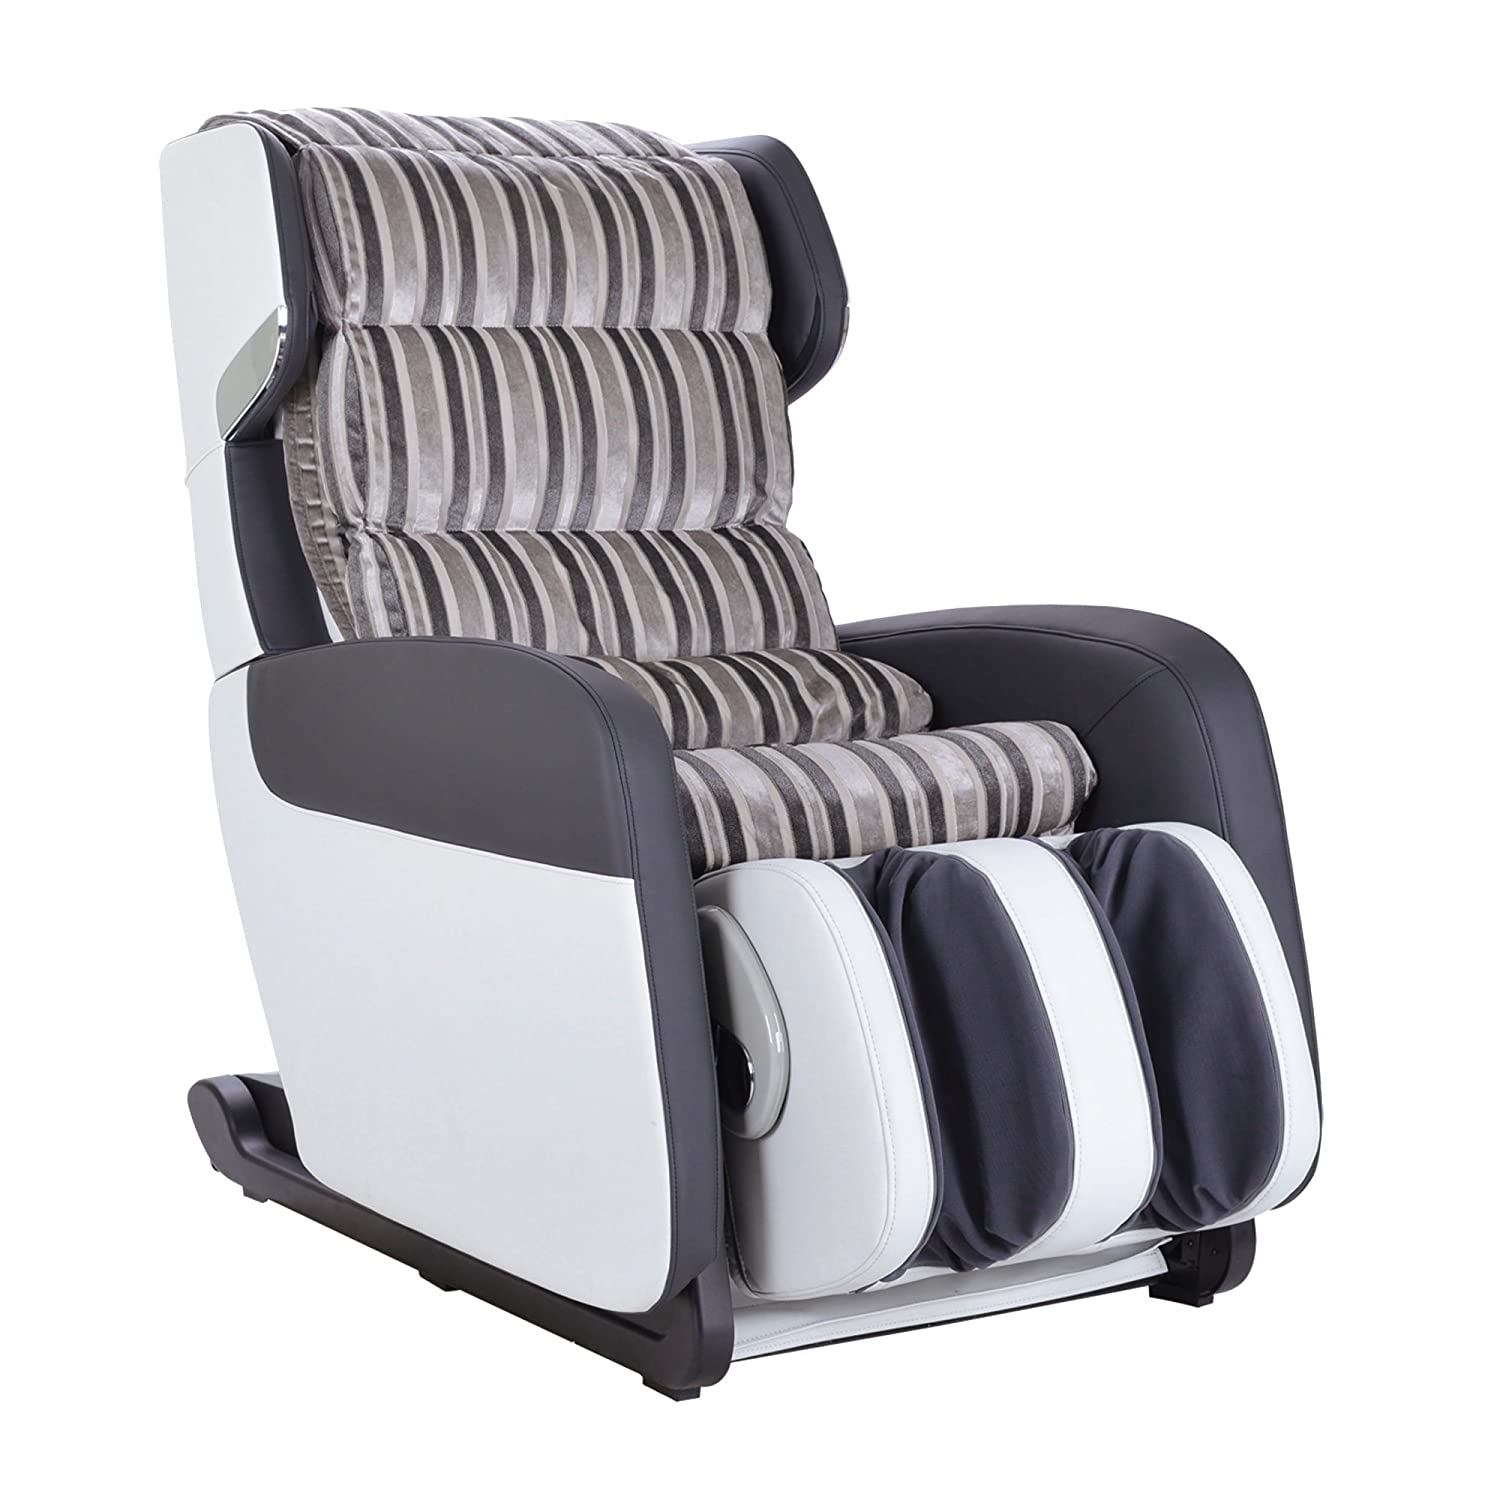 Amazon Apex TC 531 Massage Chair Grey Health & Personal Care